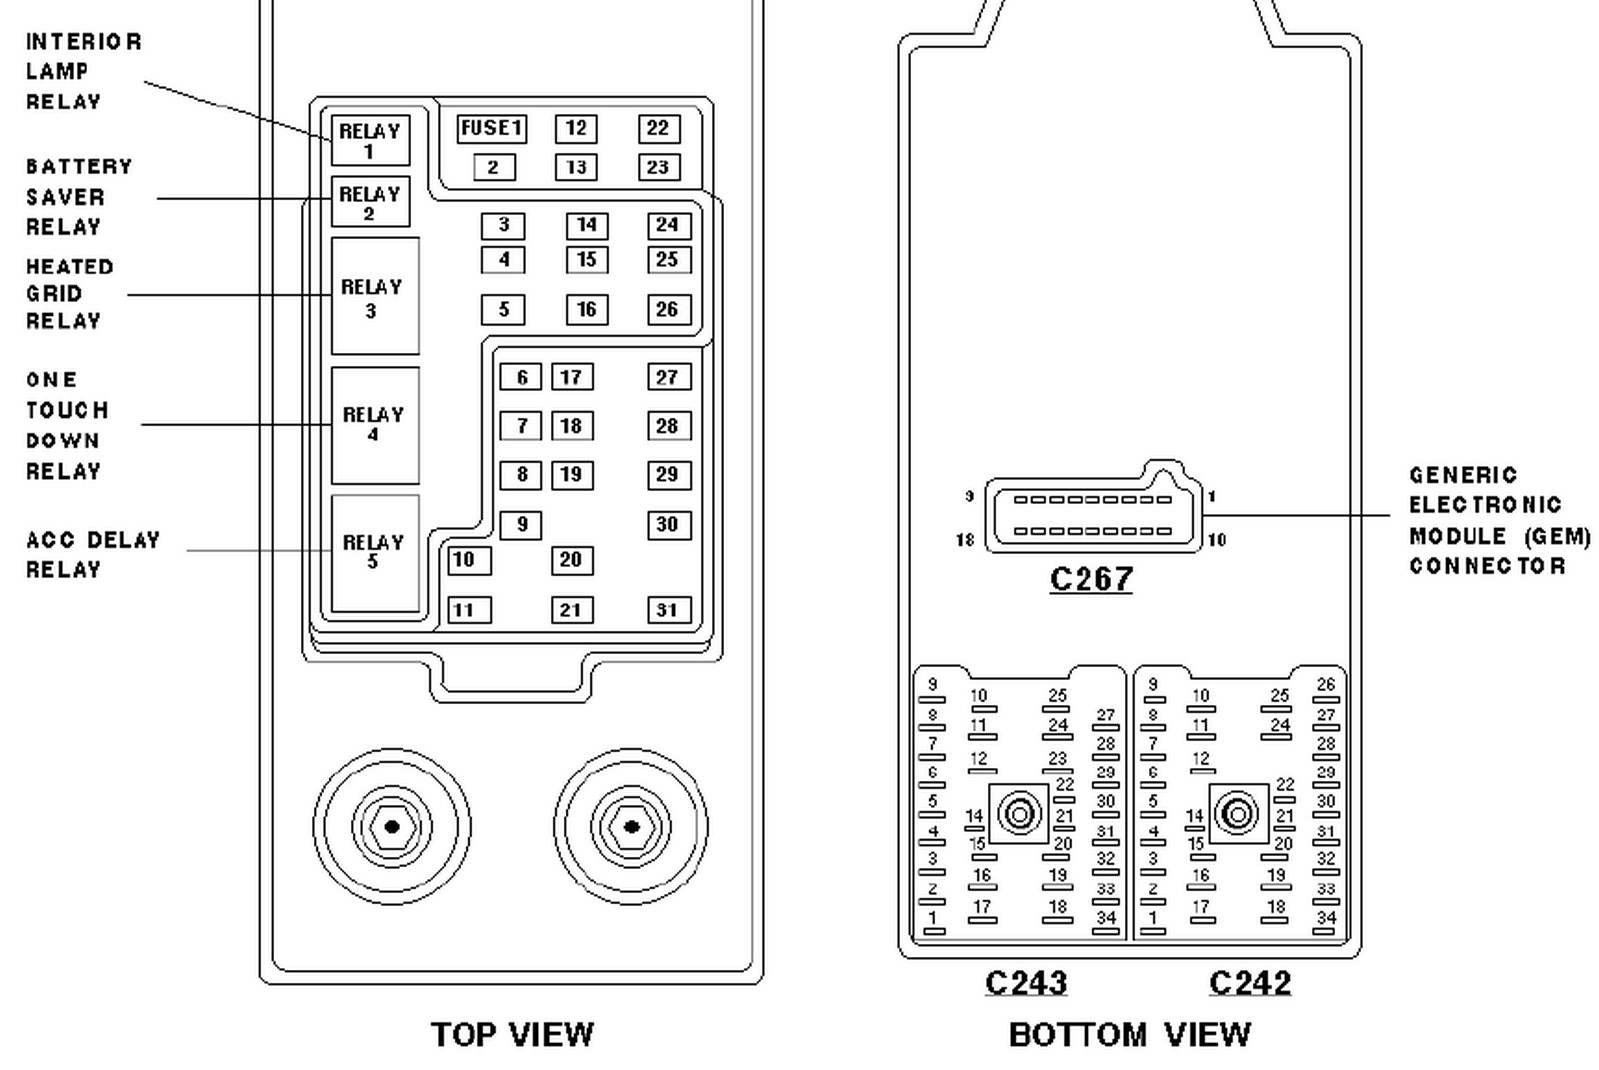 Fuse Box Ford Expedition 1999 Trusted Wiring Diagrams Festiva 2001 Diagram Image Details Wire Data Schema U2022